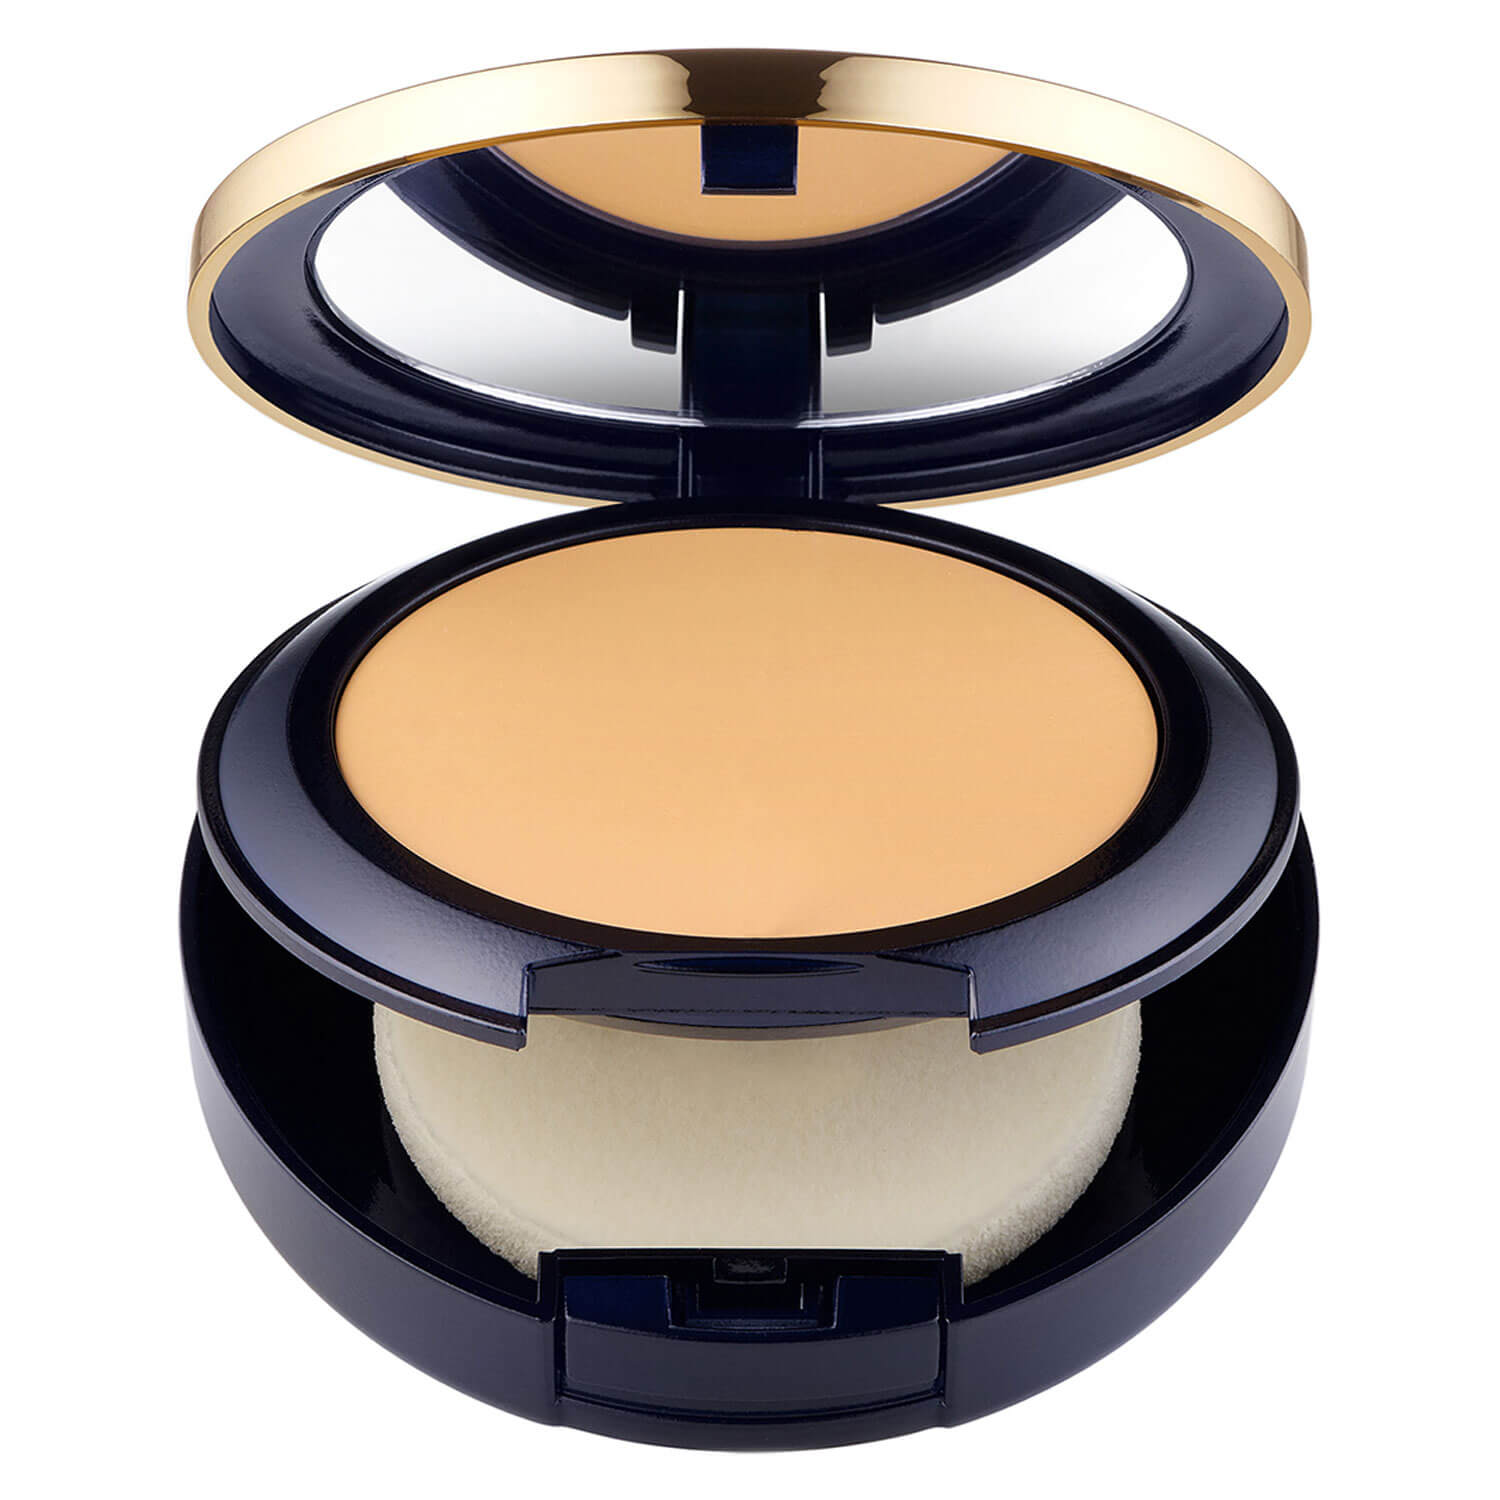 Double Wear - Stay-in Place Matte Powder Foundation Spiced Sand 4N2